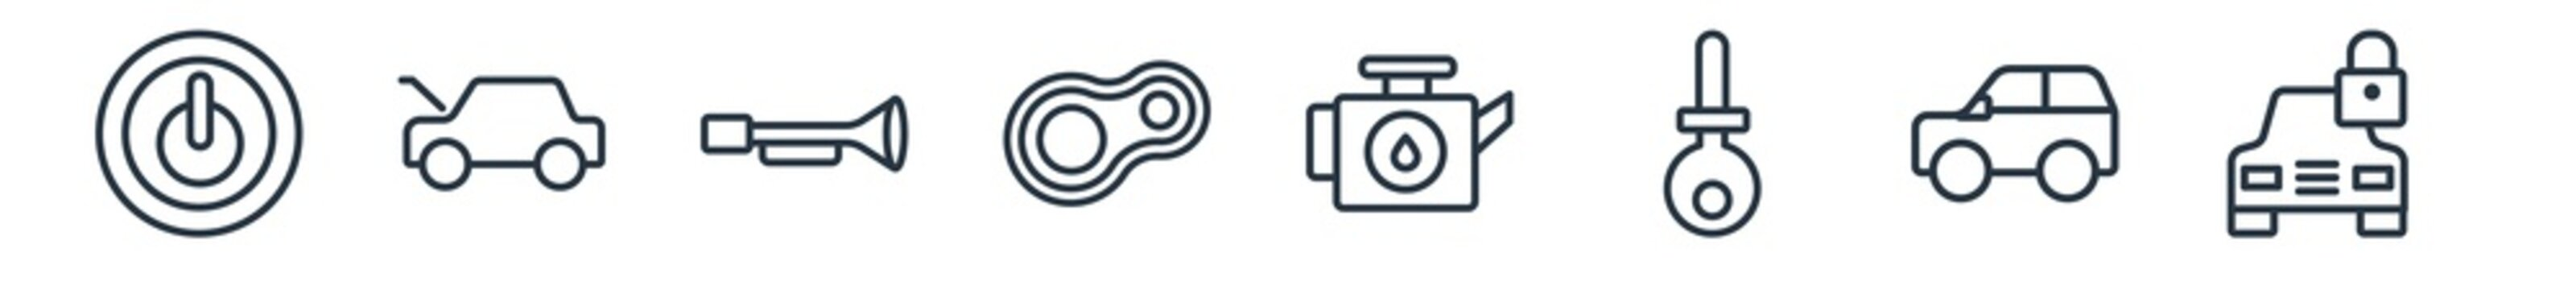 linear set of car parts outline icons. line vector icons such as car ignition, car hood, horn, headlight, oil pump, lock vector illustration.